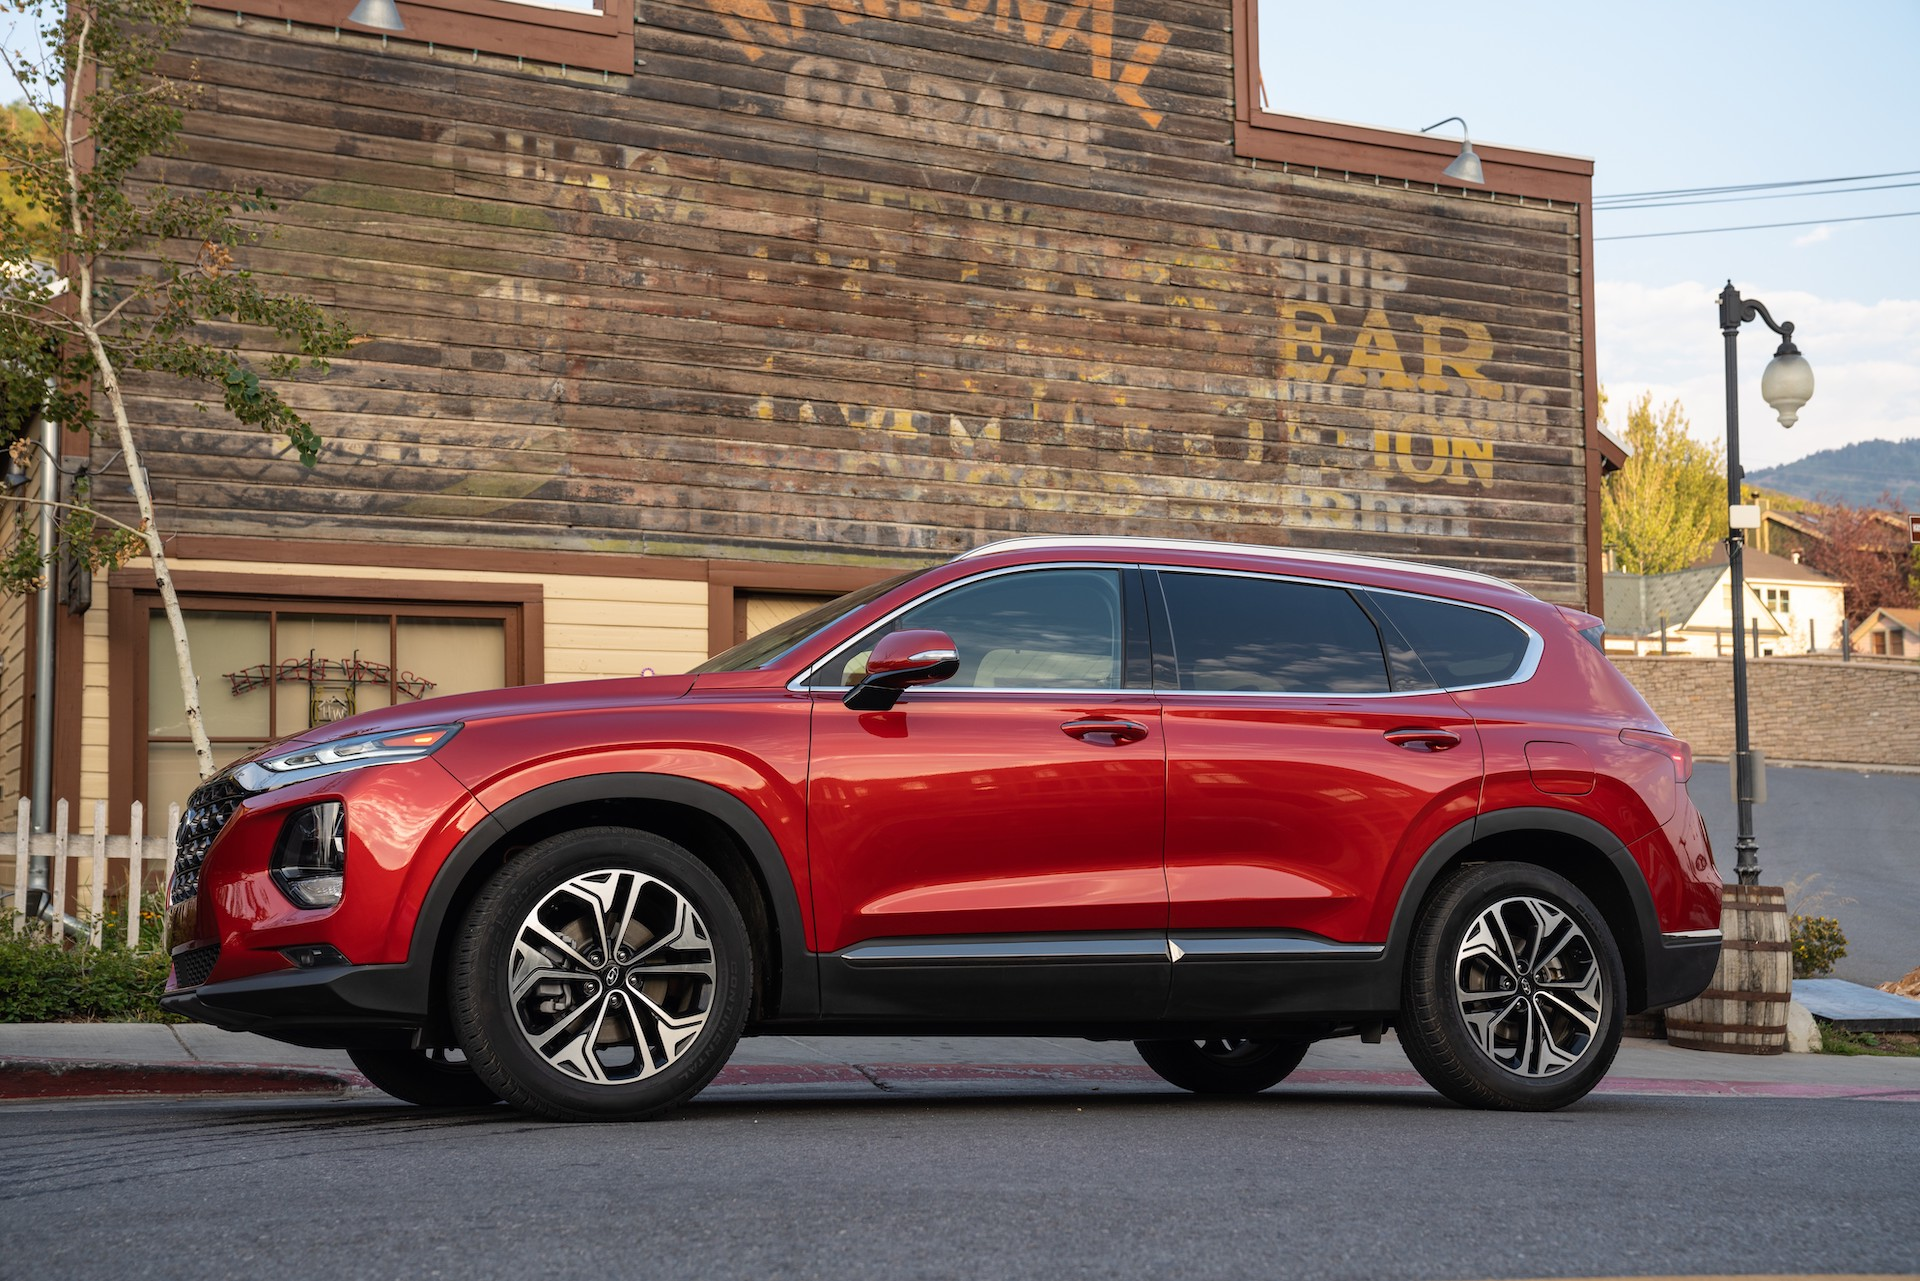 Hyundai Santa Fe 2020 Review.2020 Hyundai Santa Fe Review Ratings Specs Prices And